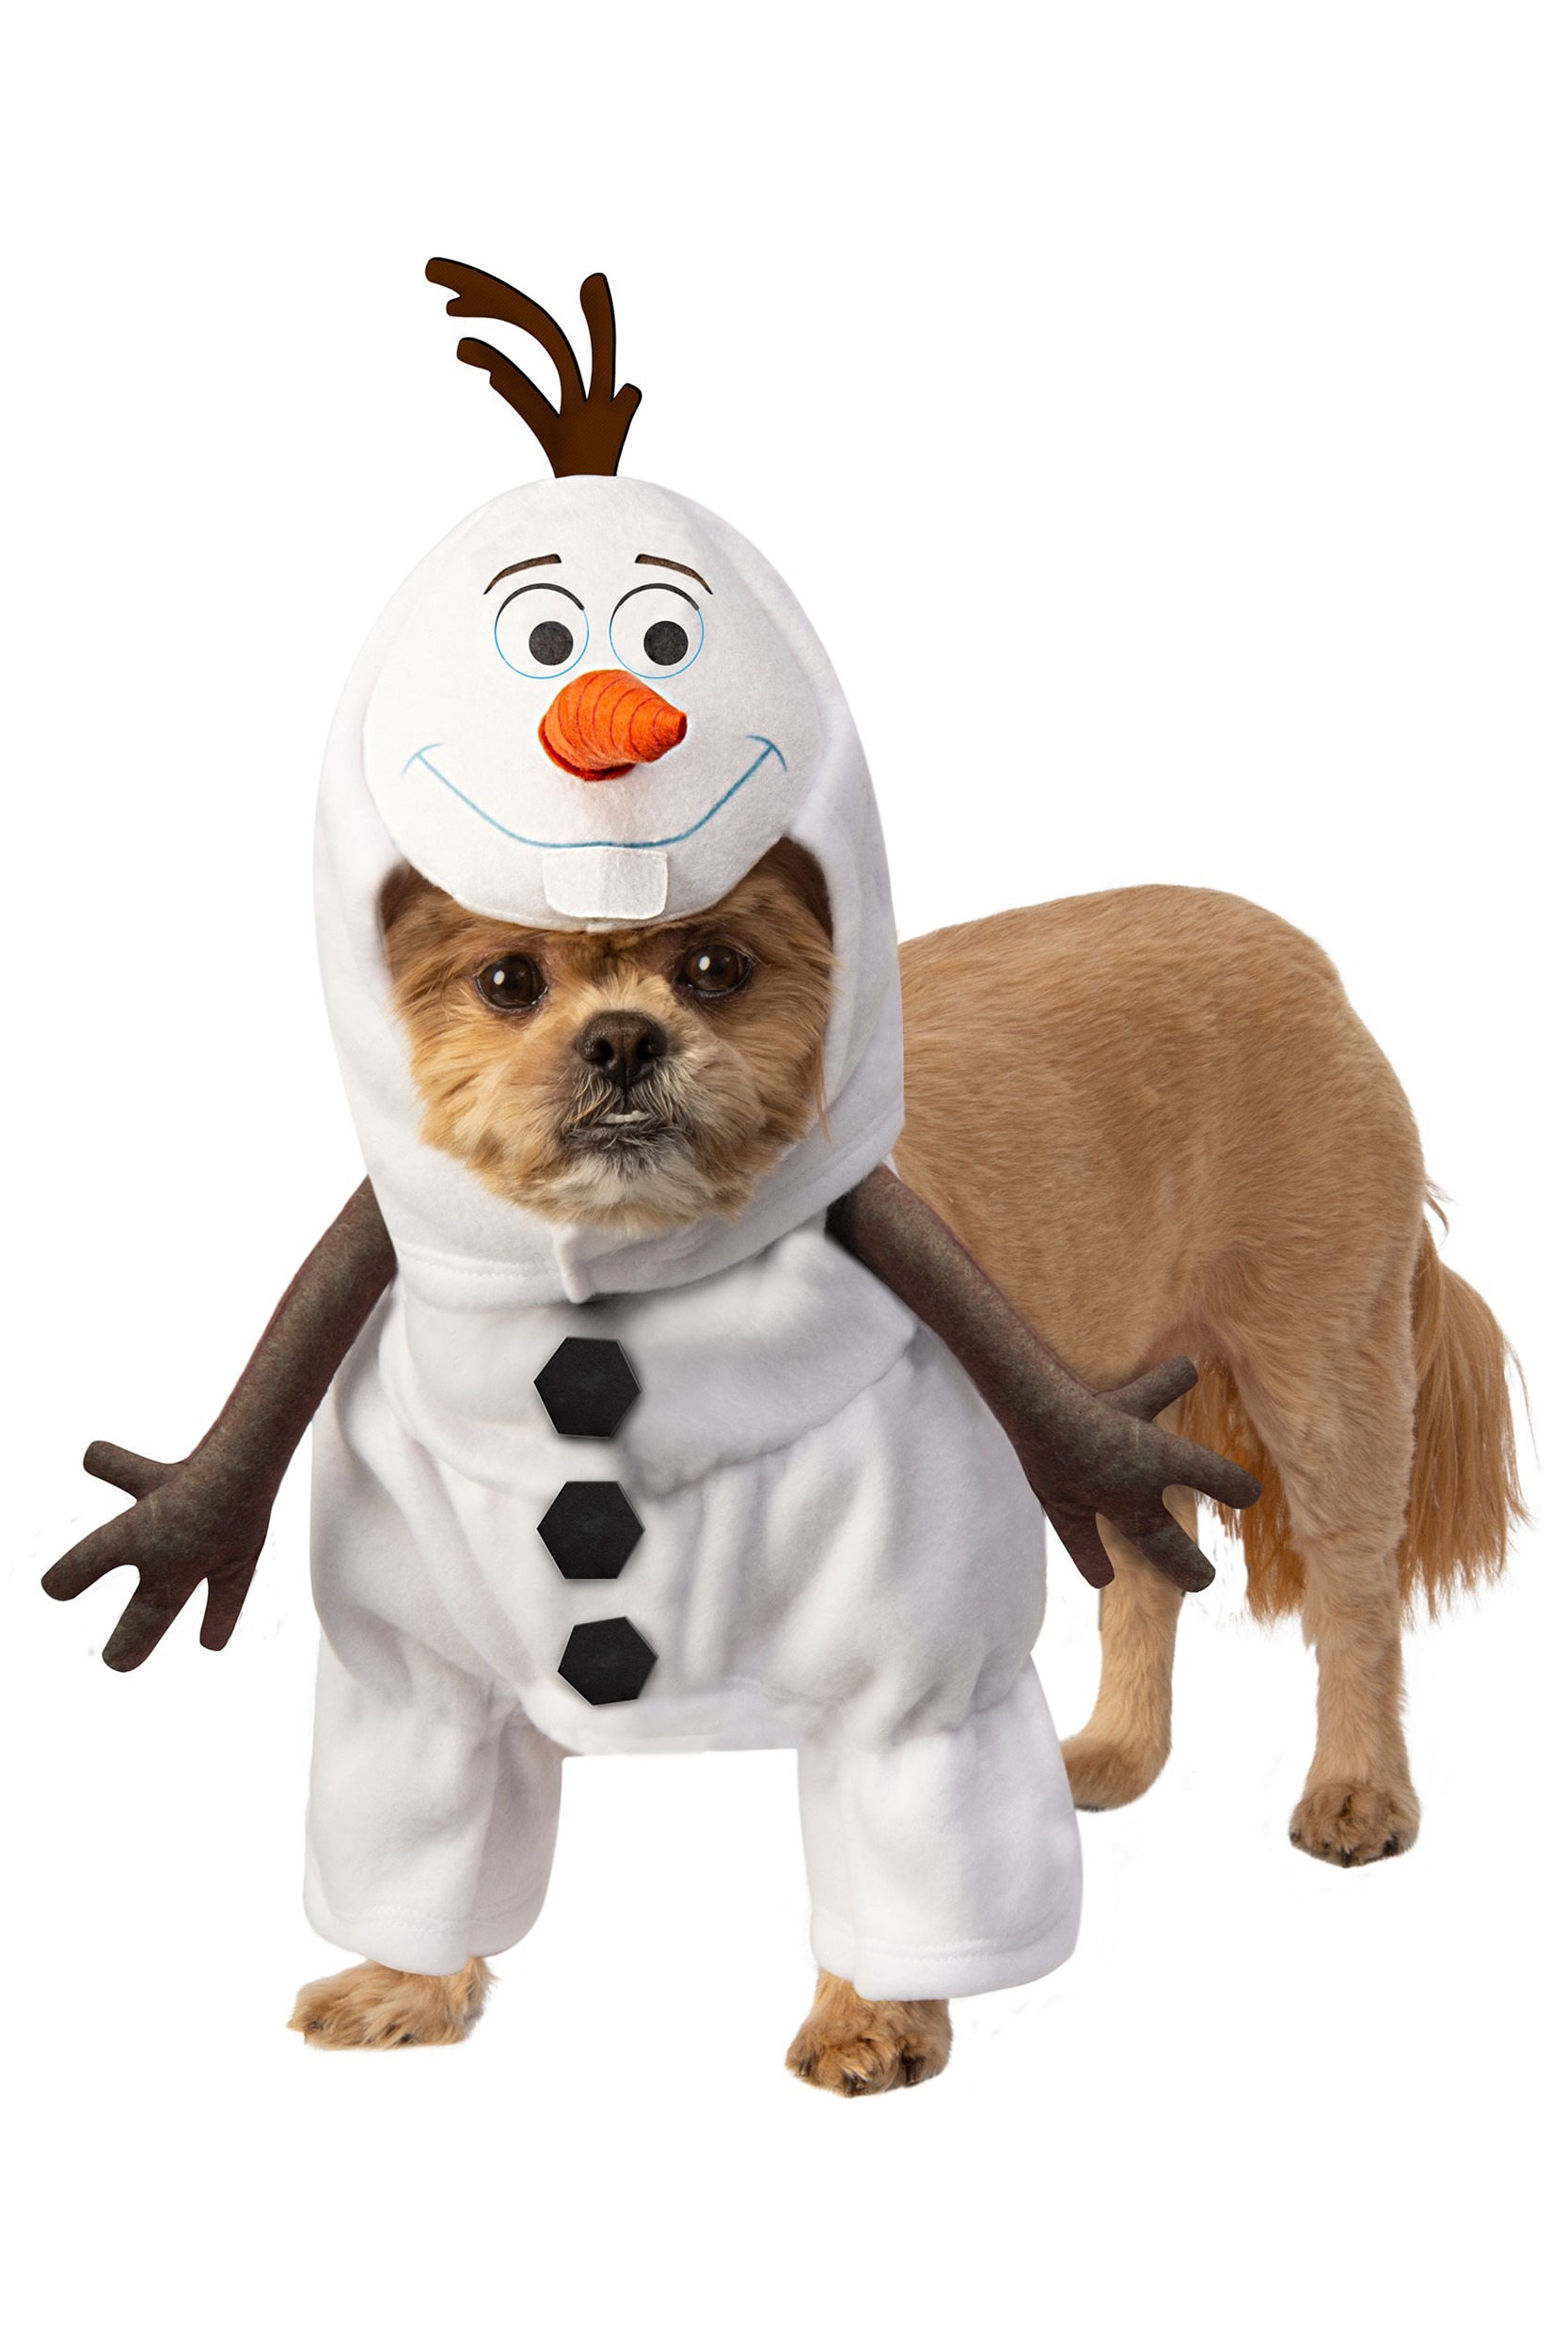 Frozen Olaf Costume for Dogs